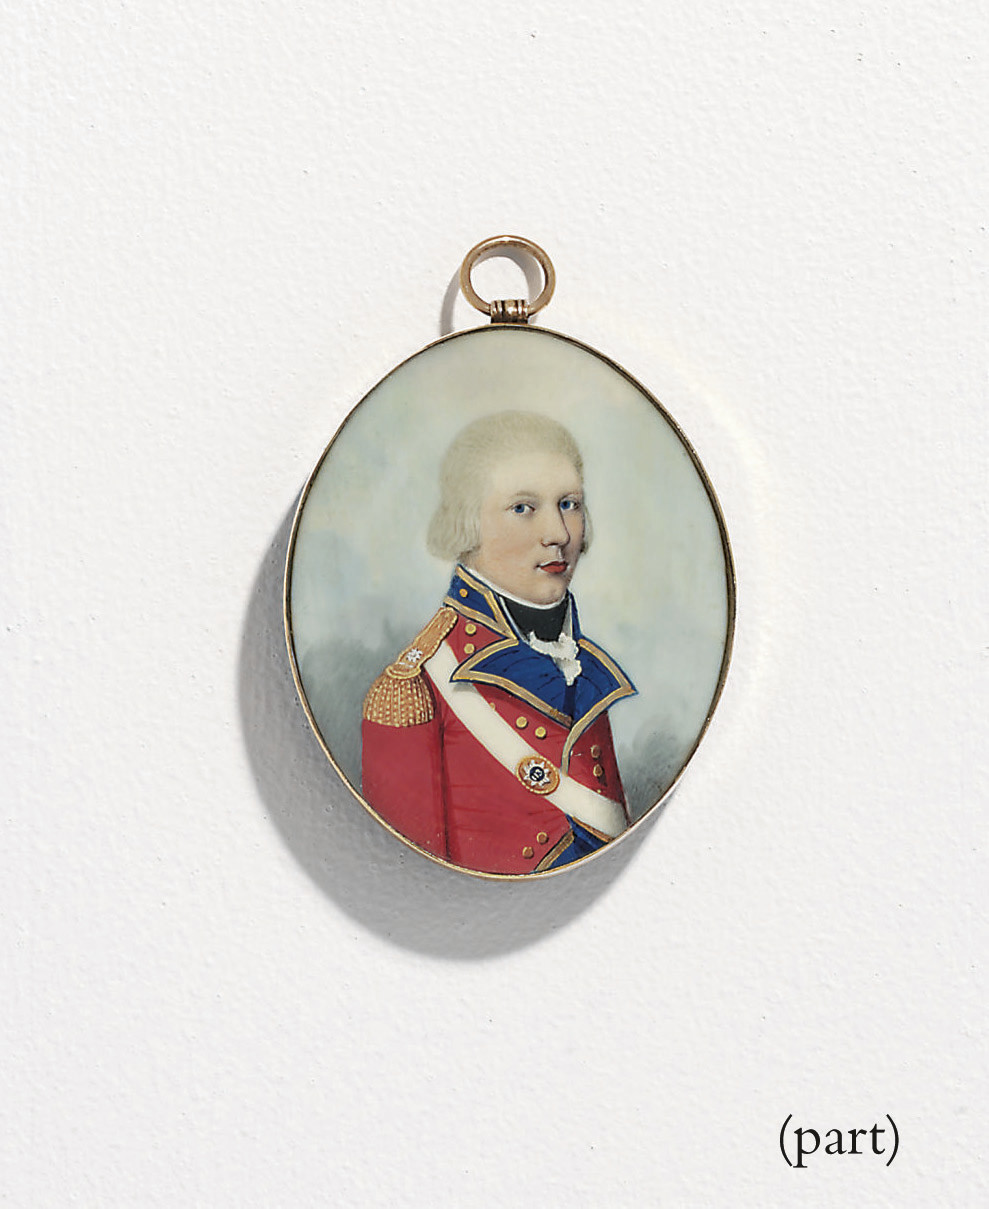 Two miniatures: a soldier of the 113th Regiment of Foot, in red coat with dark blue facing, trimmed with gold piping and gold epaulette, black stock and white frilled cravat, white shoulder belt with gilt belt plate centred with '113', powdered hair; sky background; together with Charlotte Goring Atkins, or her sister Henrietta, in white muslin dress with pleated bodice, puffed sleeves, Valenciennes lace bordering the square neckline, blue satin sash, gold pendant earring, her centre-parted brown hair upswept into a plaited topknot with side ringlets; sky background